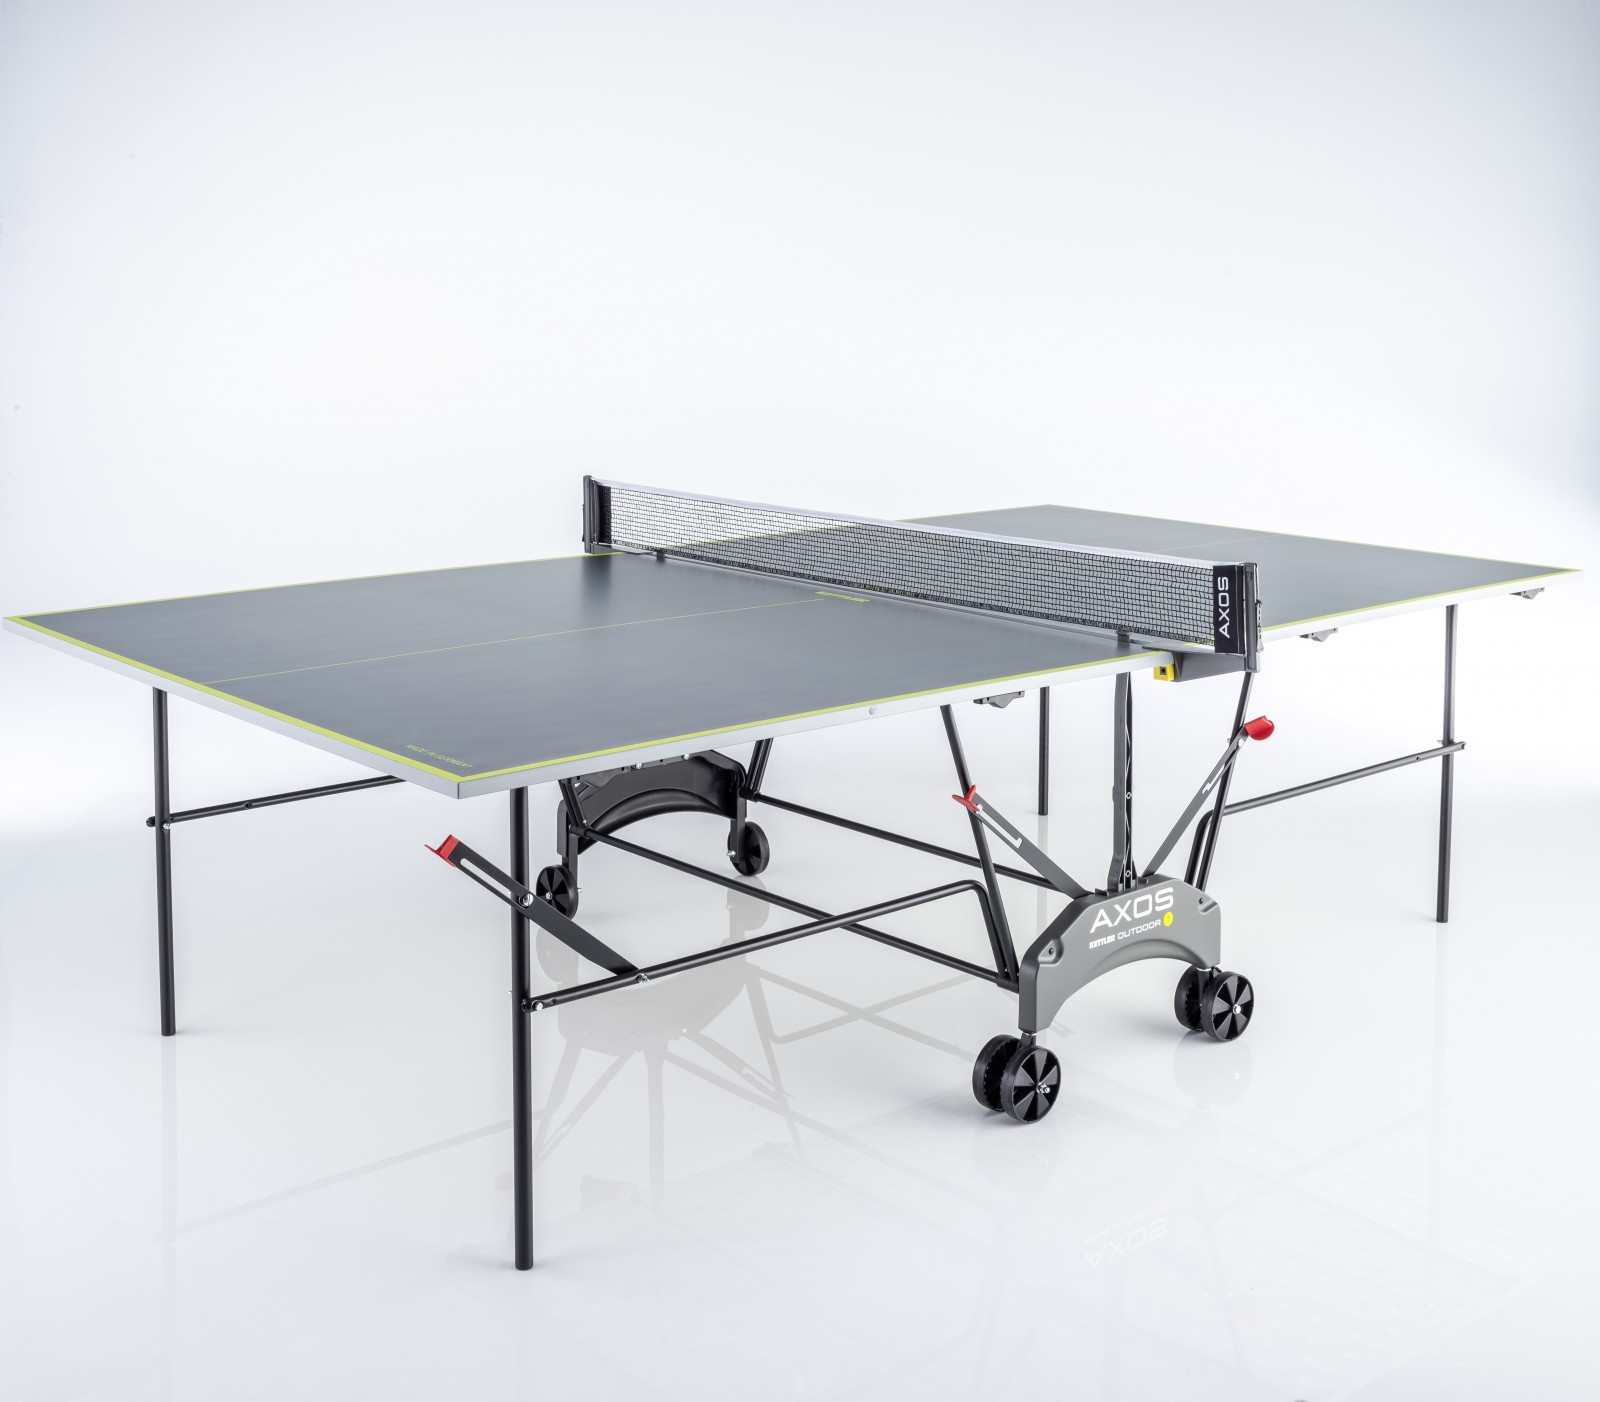 kettler outdoor table tennis table axos 1 buy with 64. Black Bedroom Furniture Sets. Home Design Ideas